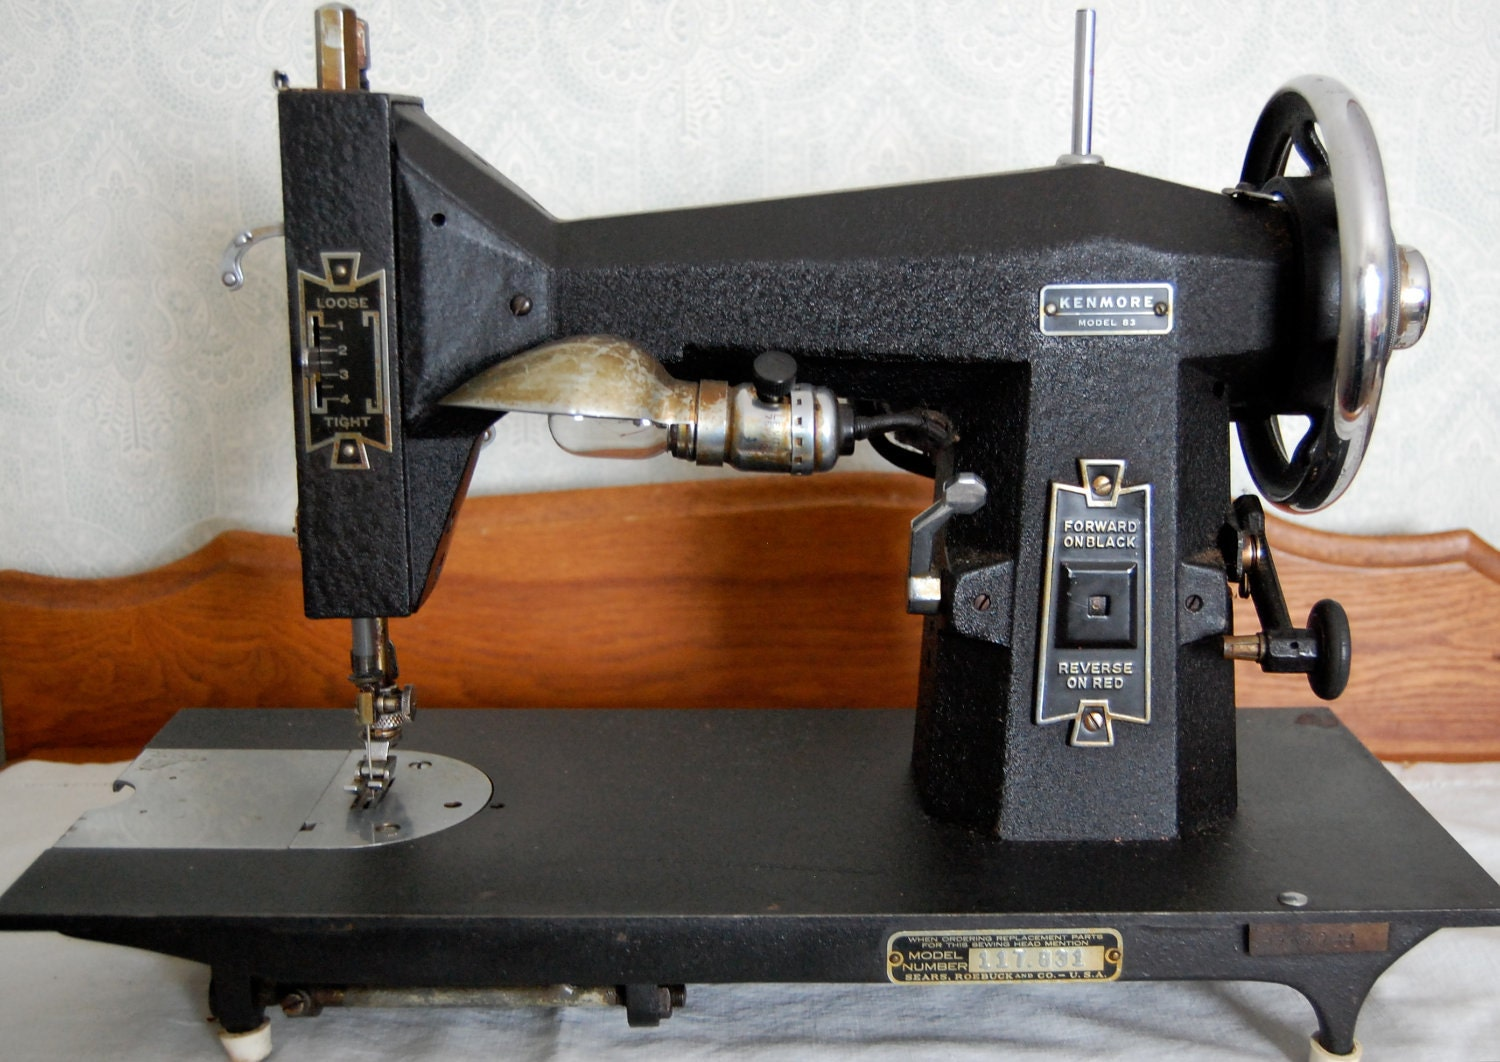 Electrical Sewing Machine : Antique kenmore model electric sewing machine